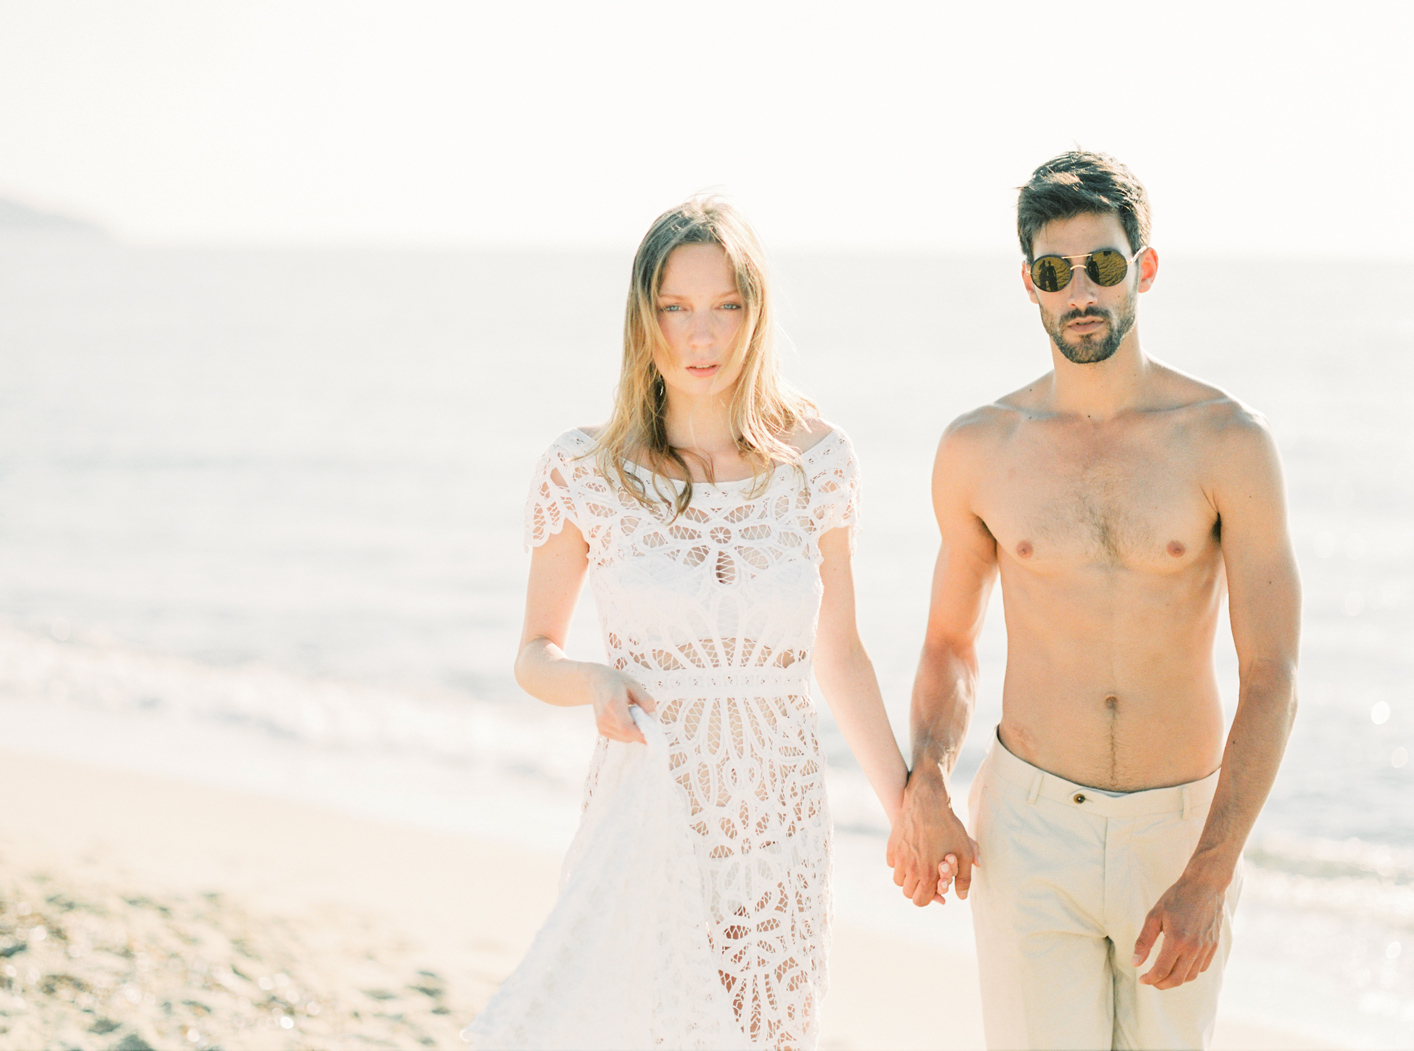 Saint Tropez Honeymoon Photo Session by Ashley Ludaescher Photography (20)